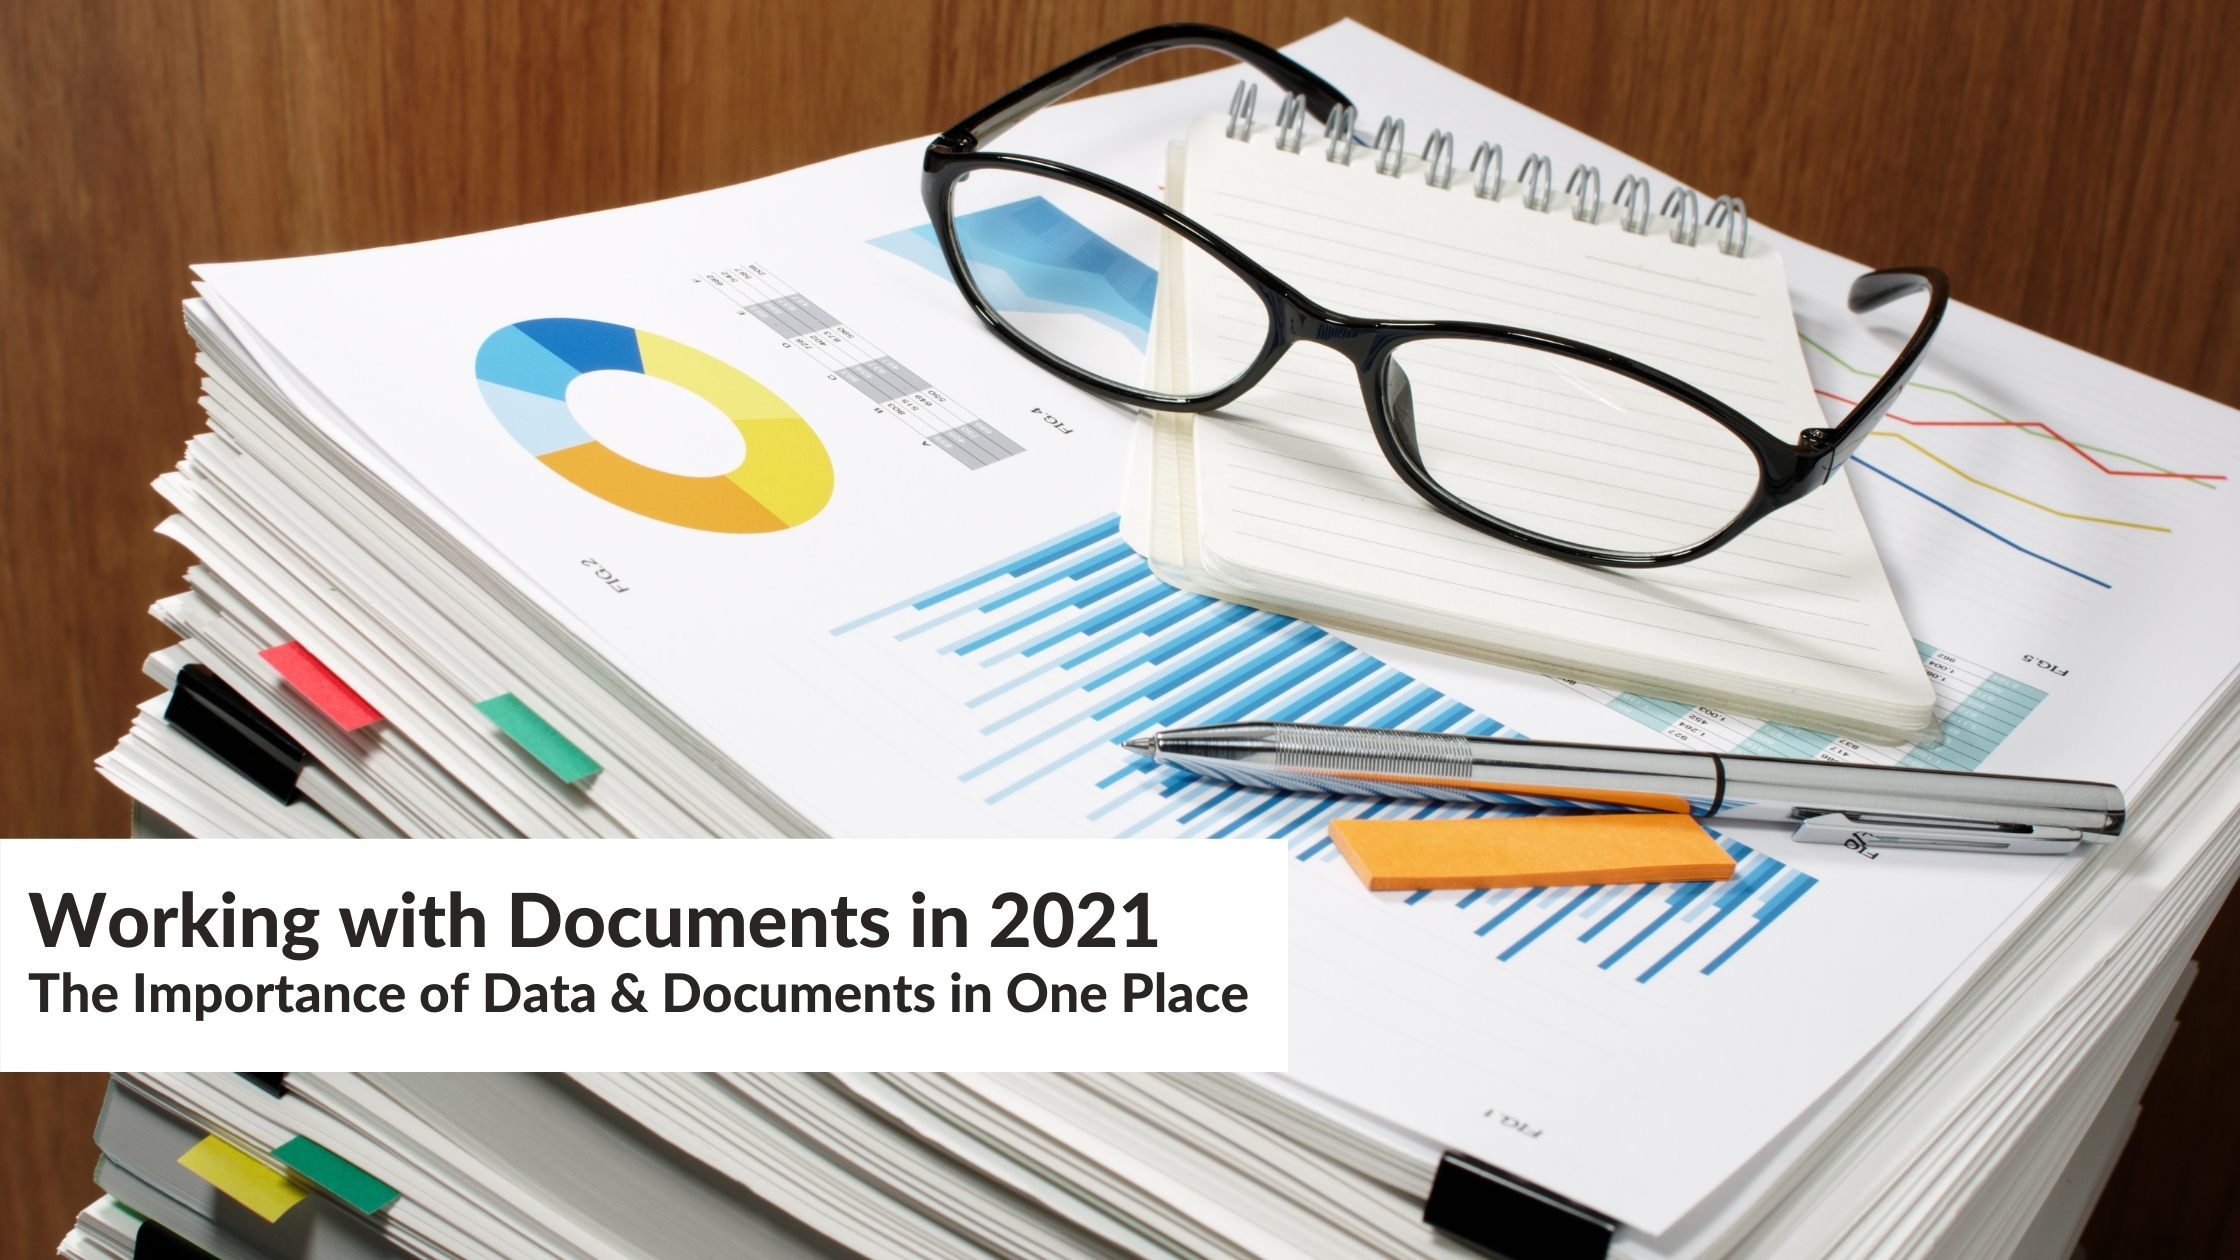 Working with Documents in 2021